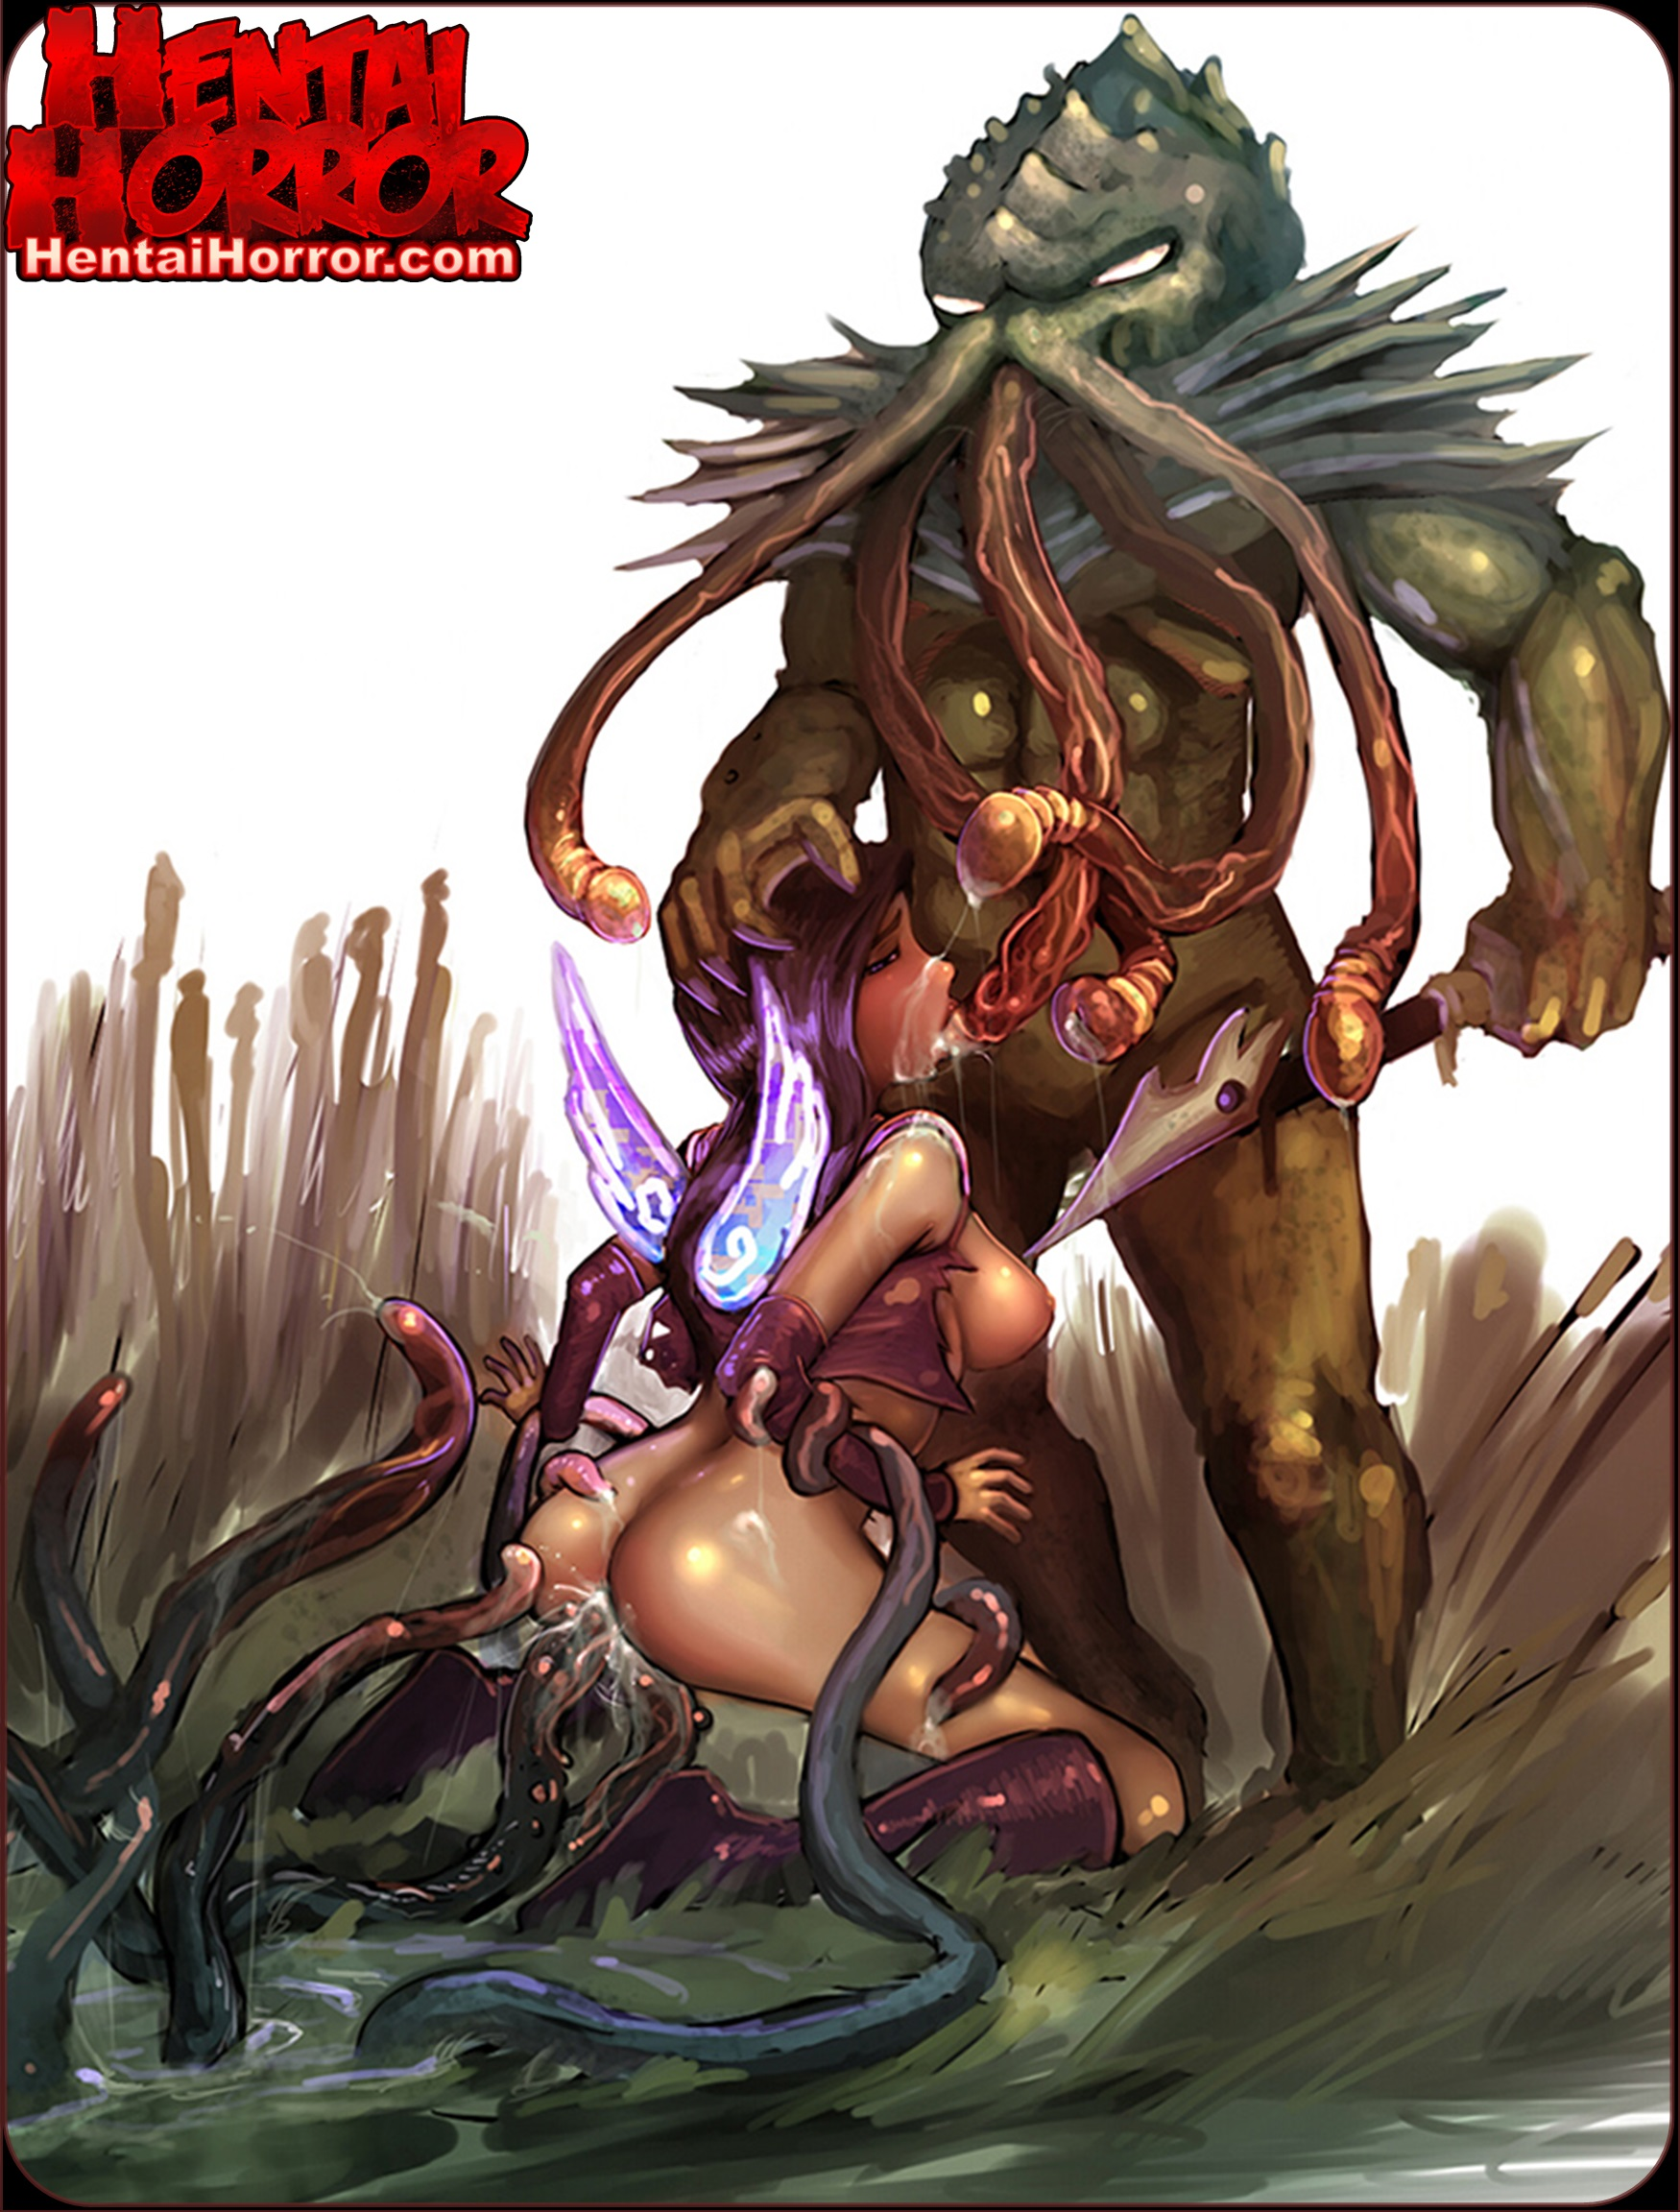 Uncensored tentacle hentai monster Cthulhu pulp fiction porn art of monster cock raping a big tits girl's face.